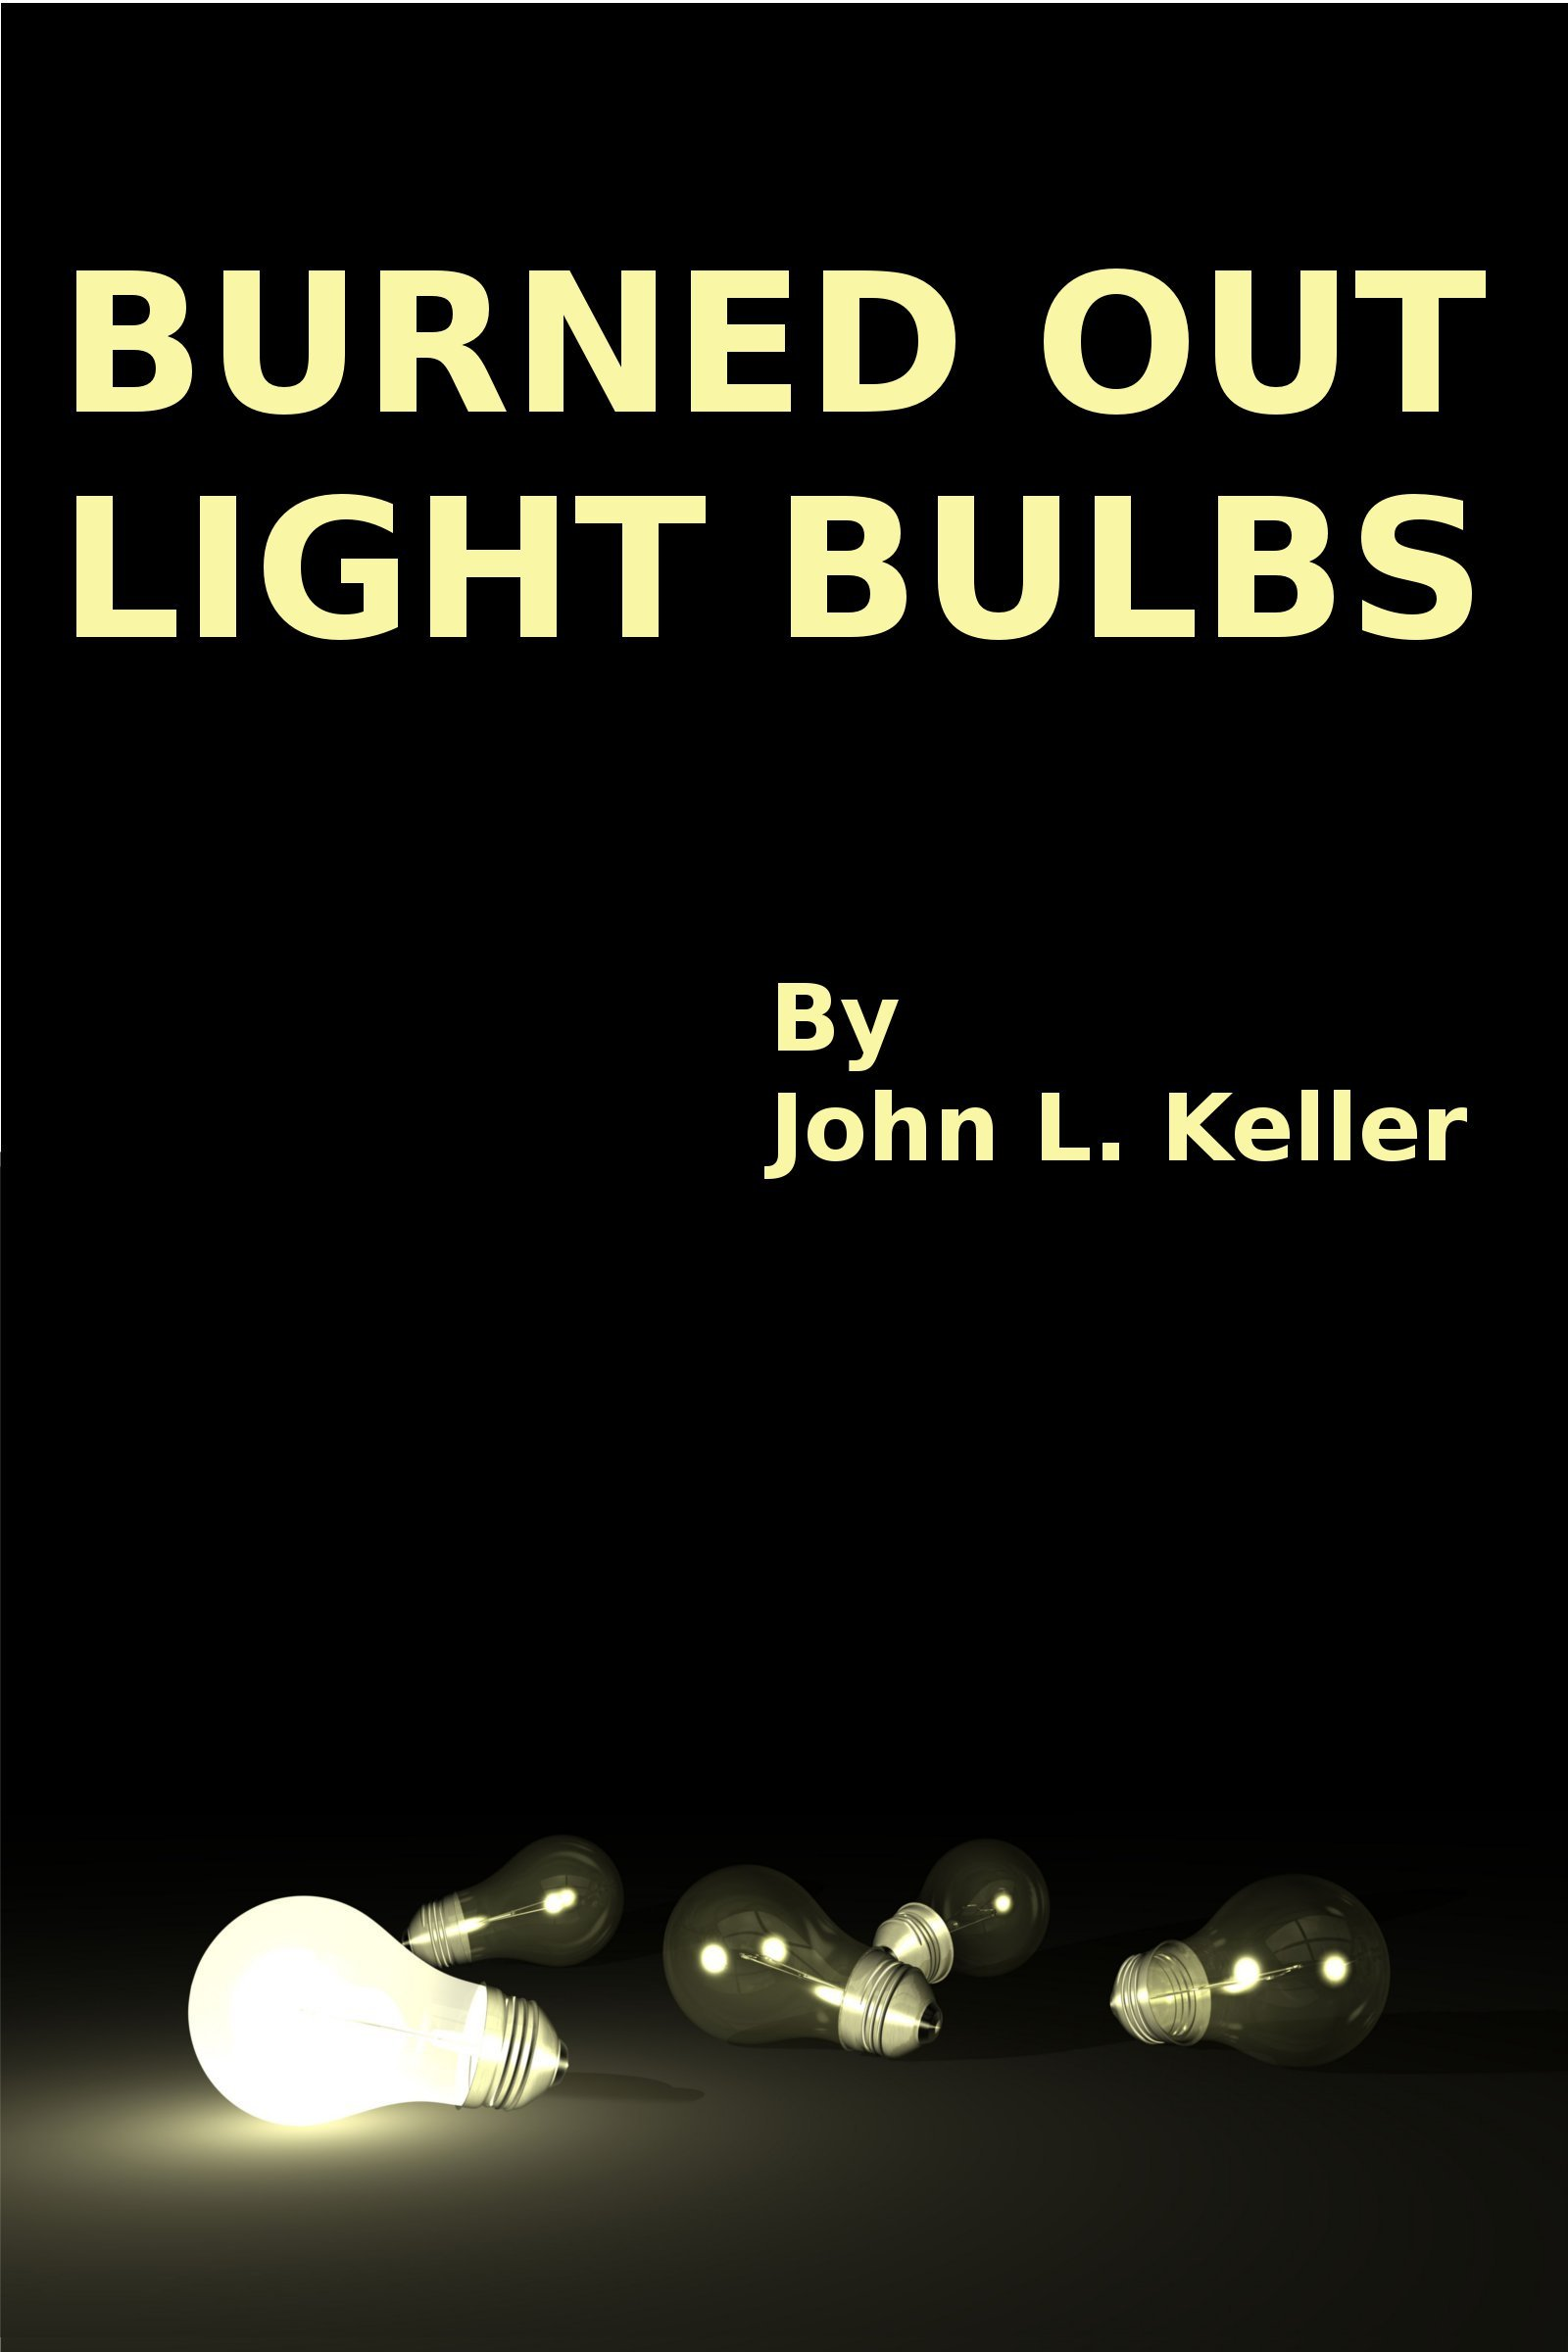 Burned Out Light Bulbs